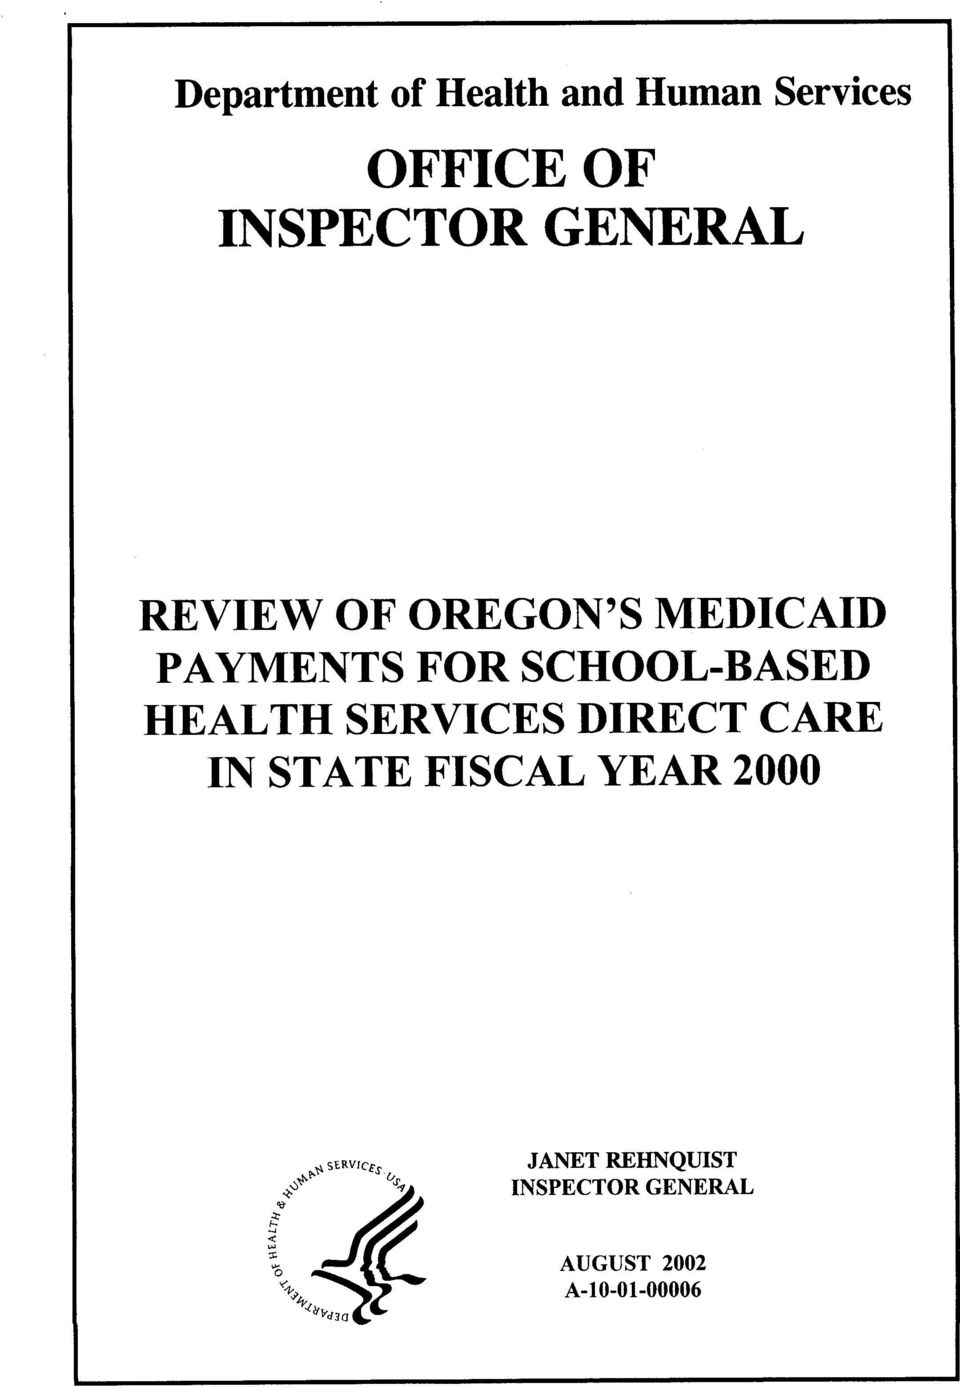 HEALTH SERVICES DIRECT CARE IN STATE FISCAL YEAR 2000